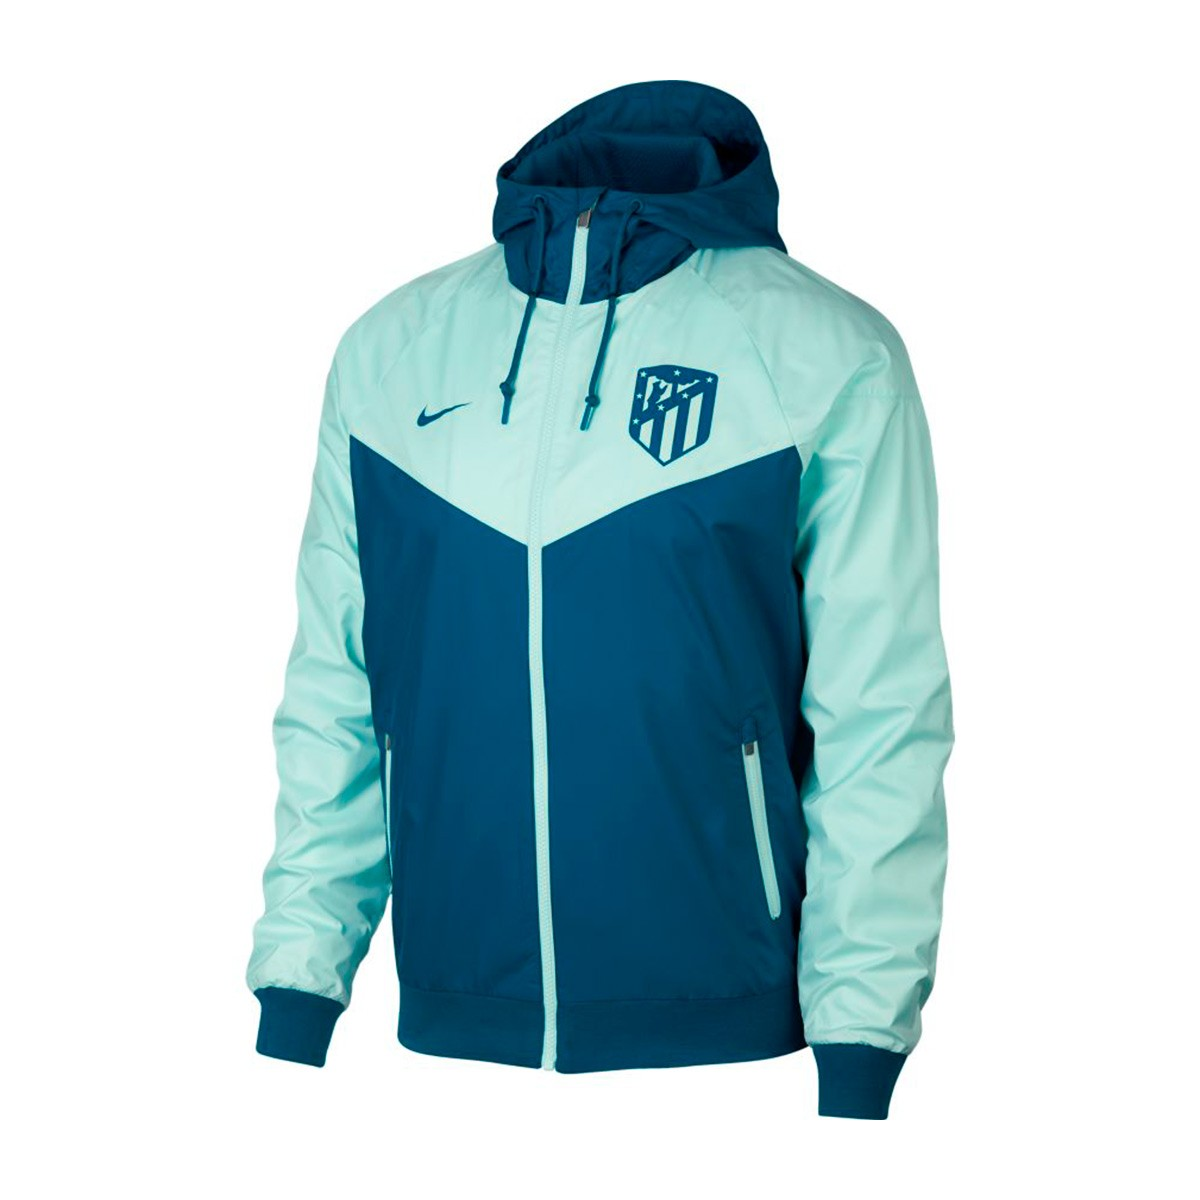 fb74288c0 Jacket Nike Atlético de Madrid Windrunner 2018-2019 Green abyss ...